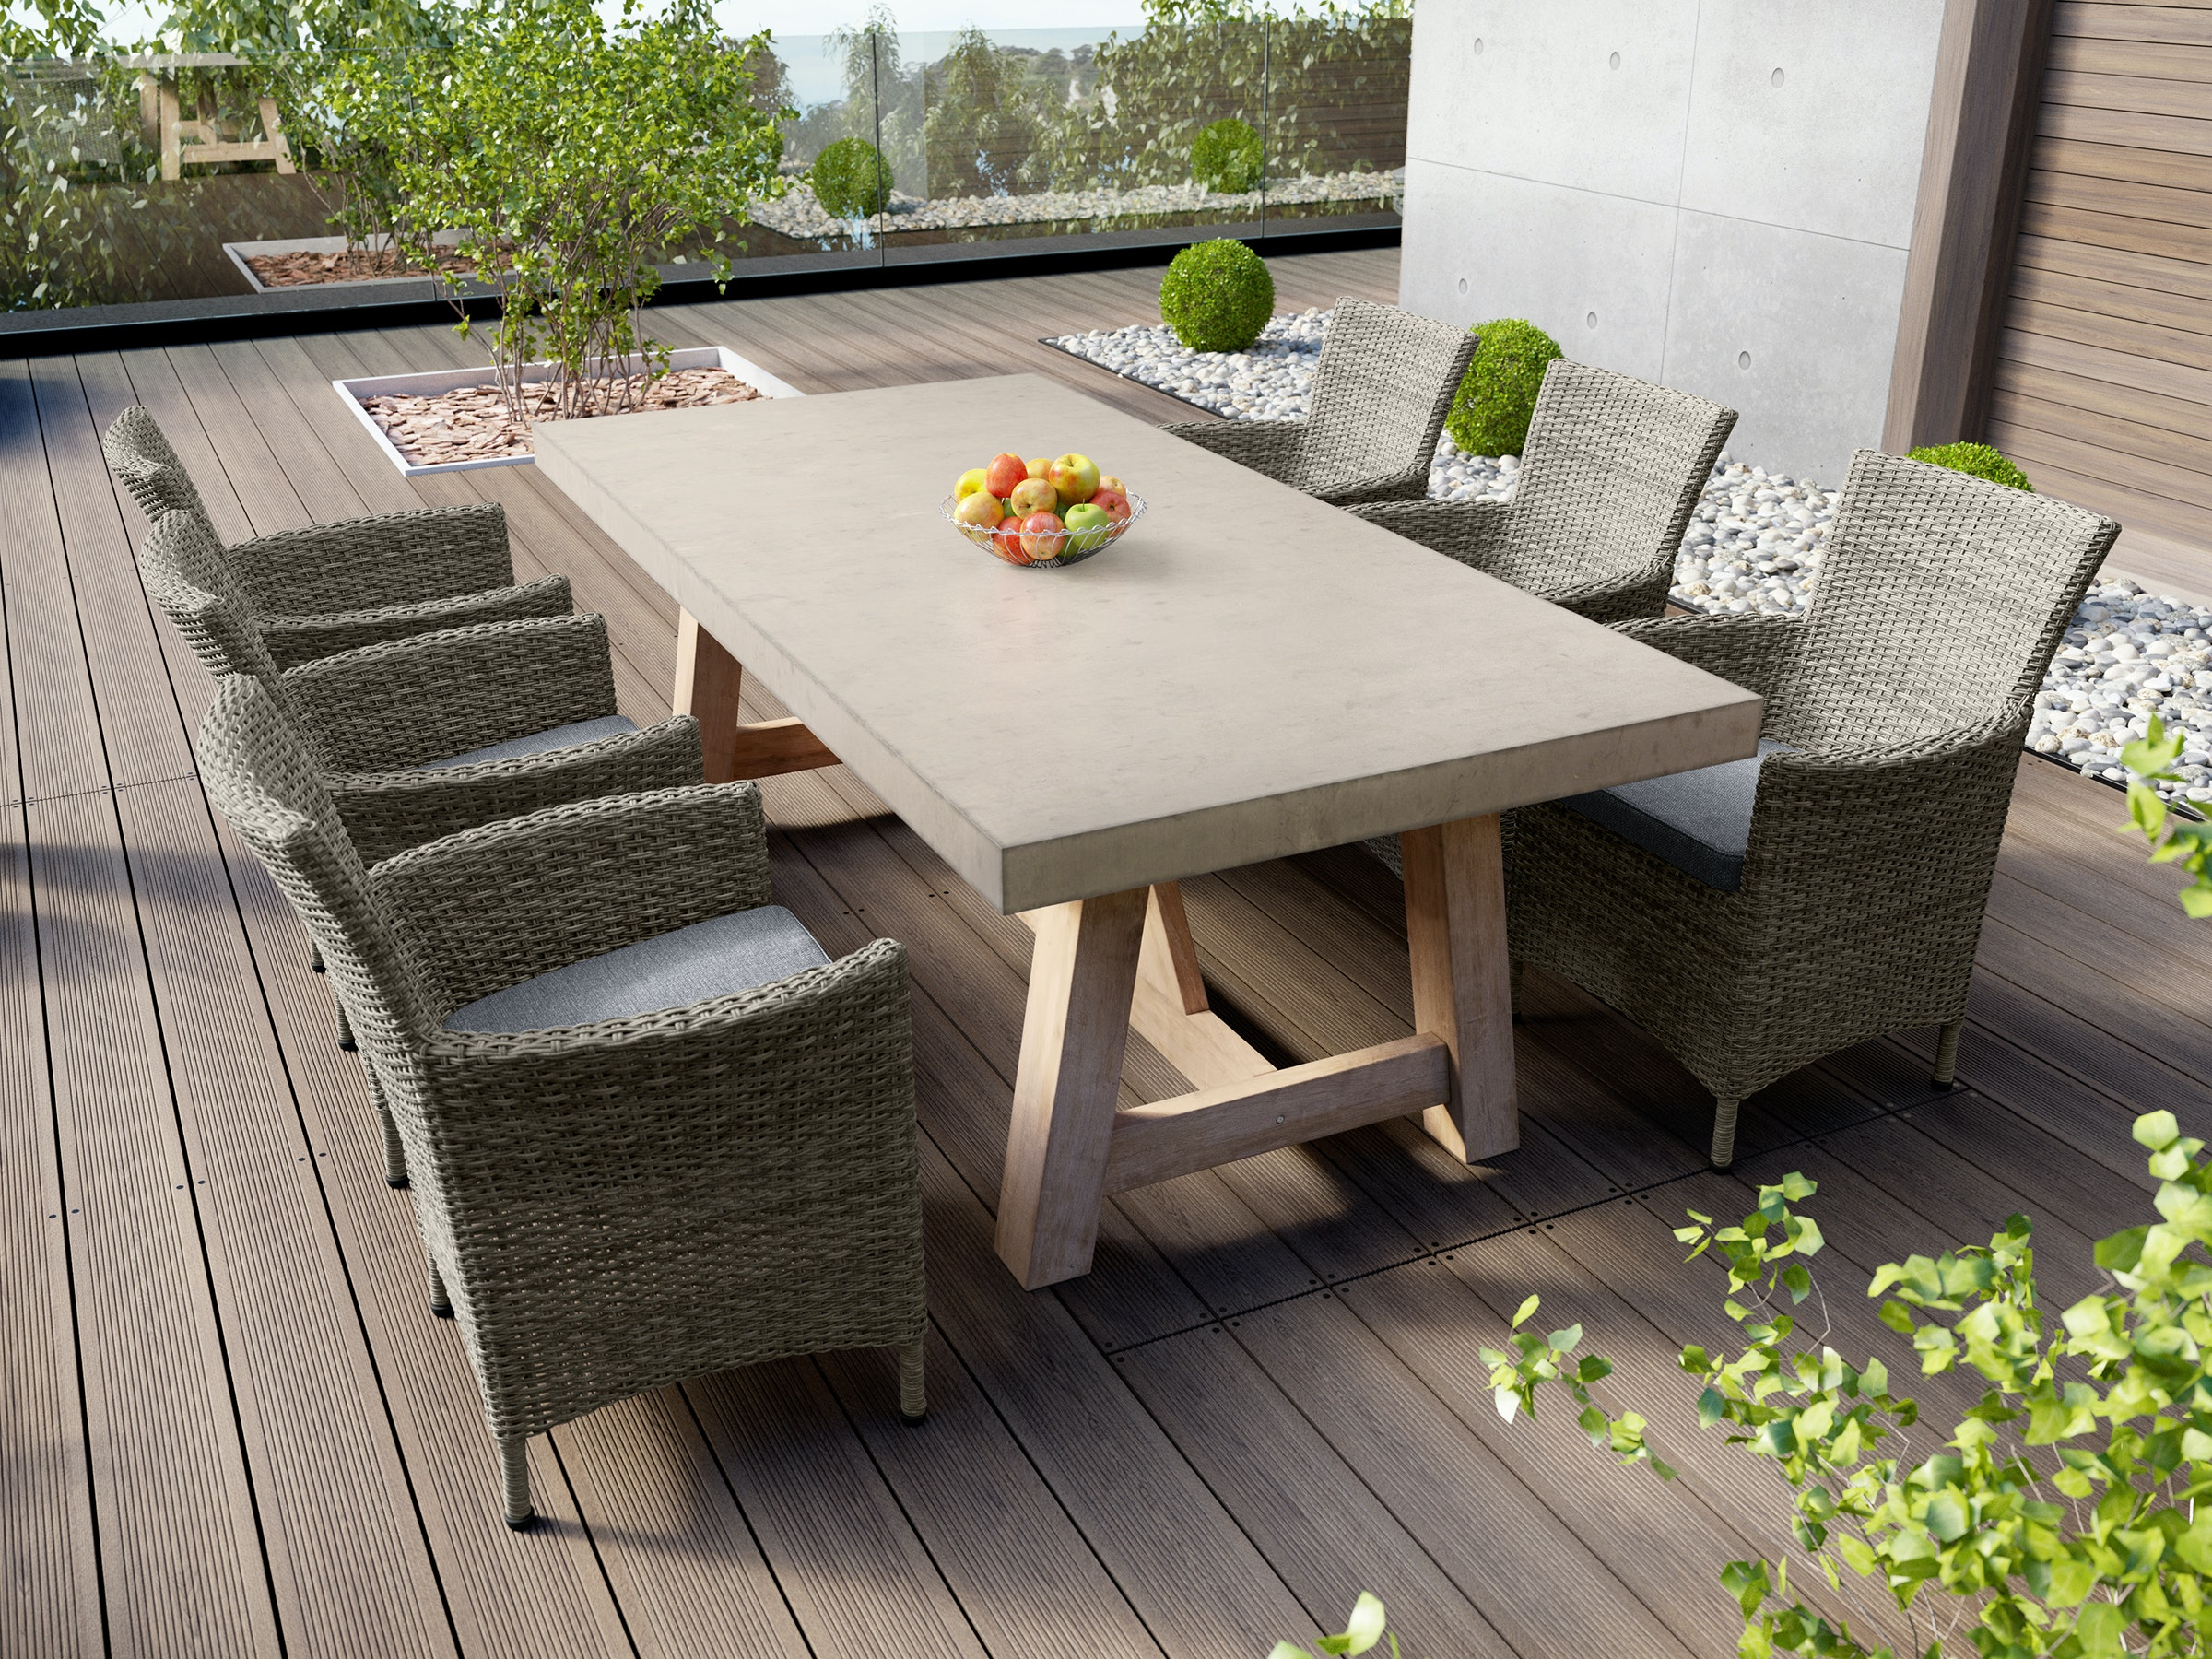 Tate Concrete Outdoor Dining Table with Elba Rattan Chairs